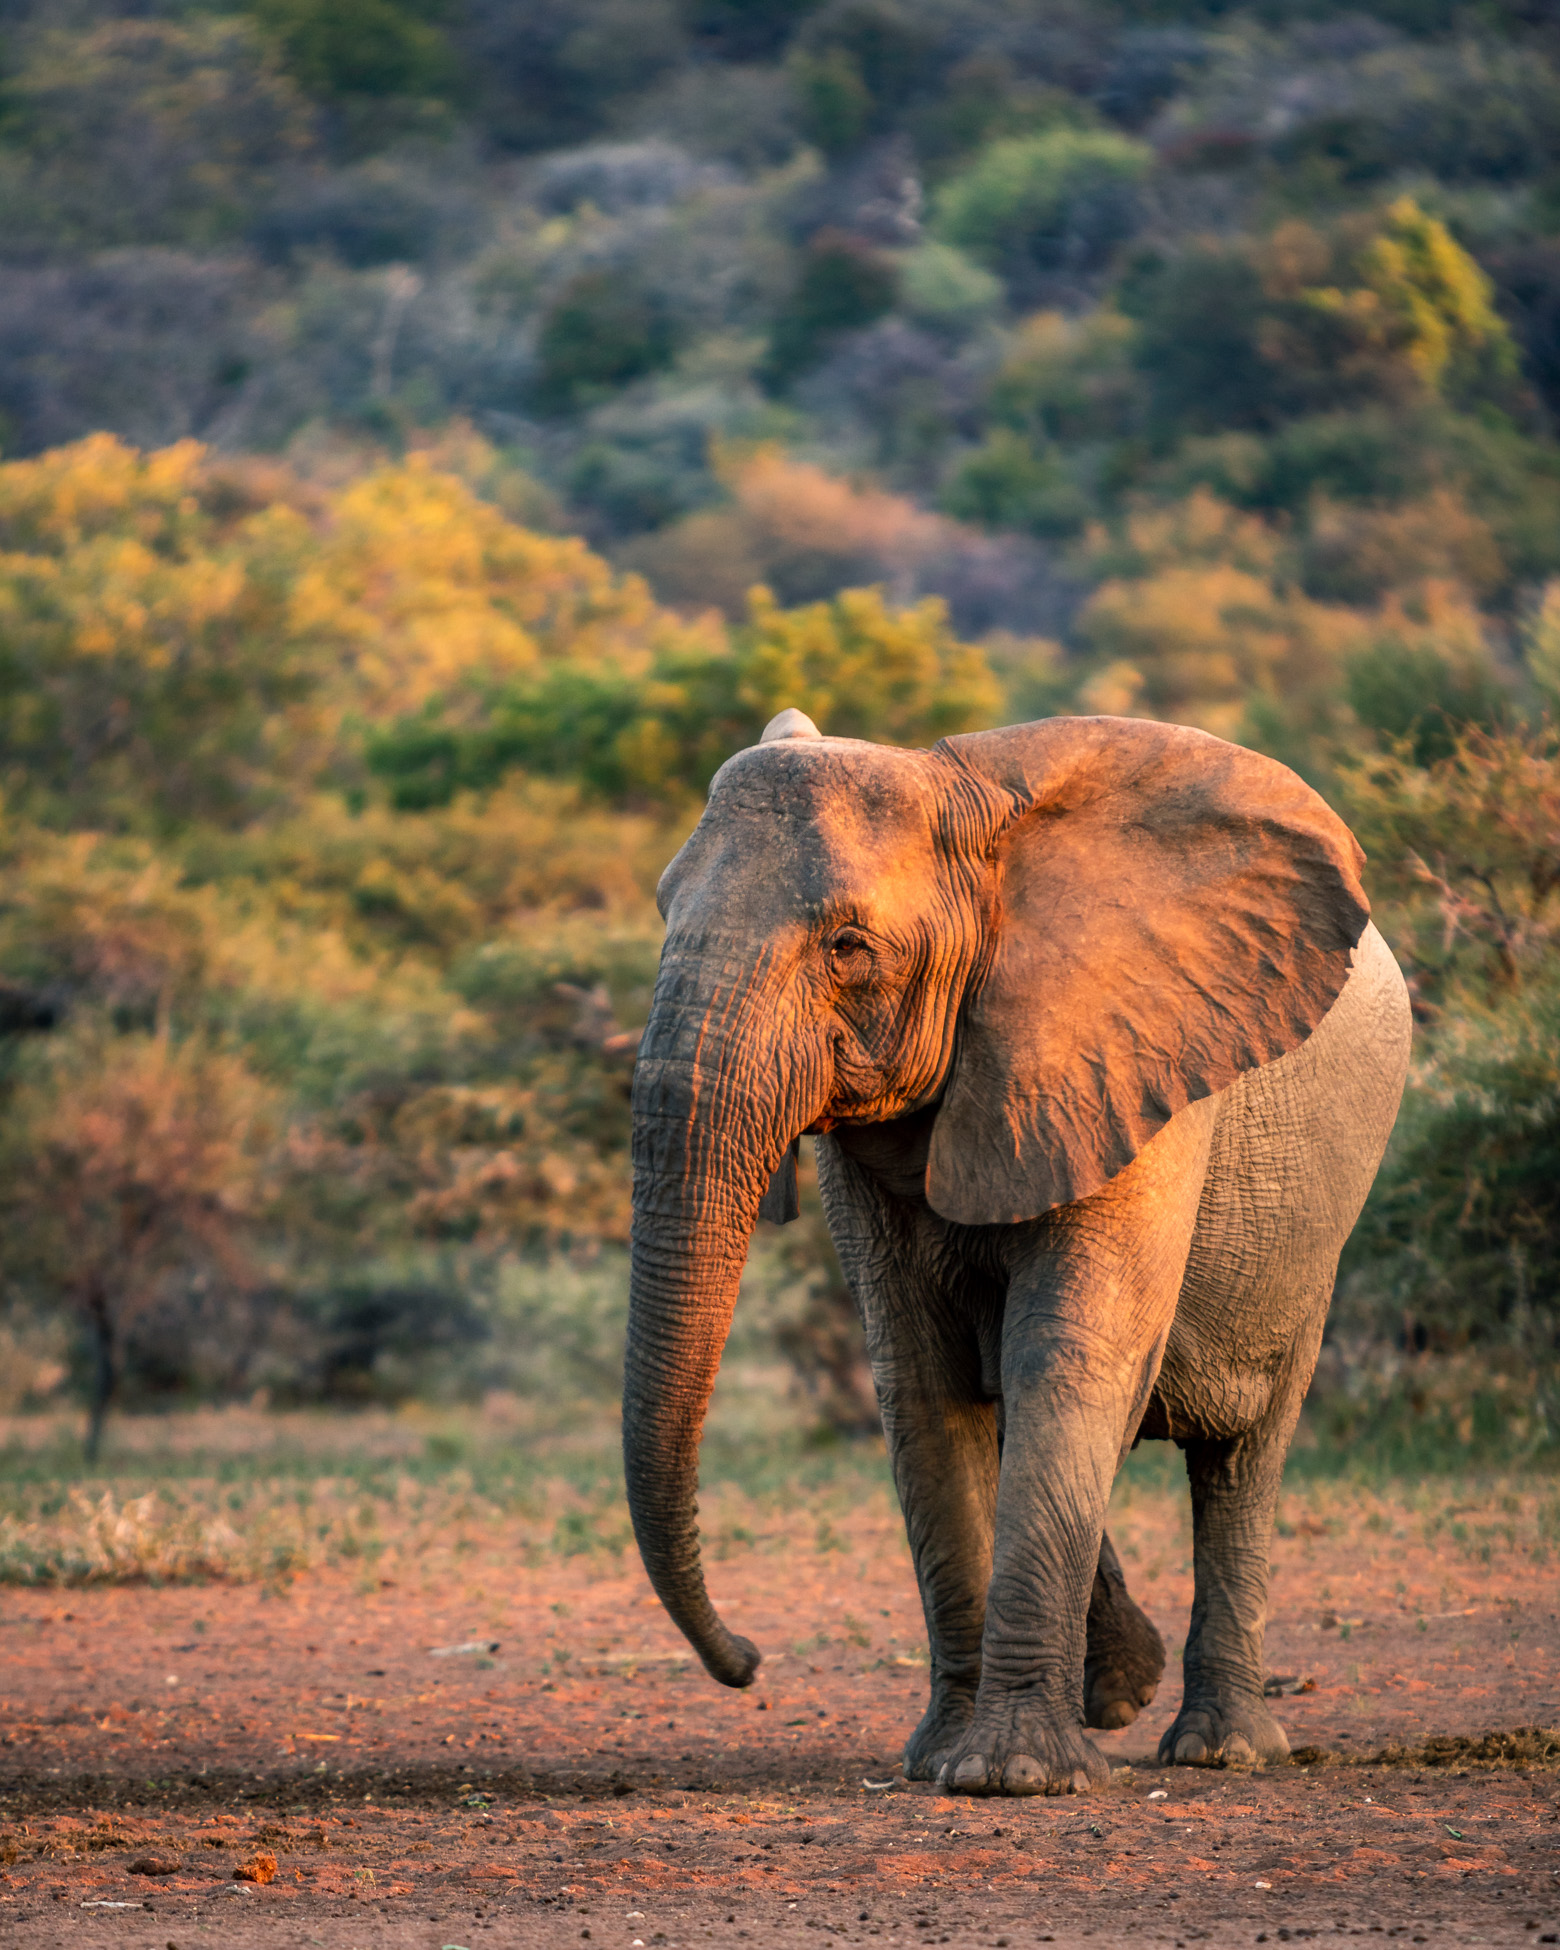 wildlife_photography_african_elephant_greengraf_photography.jpg